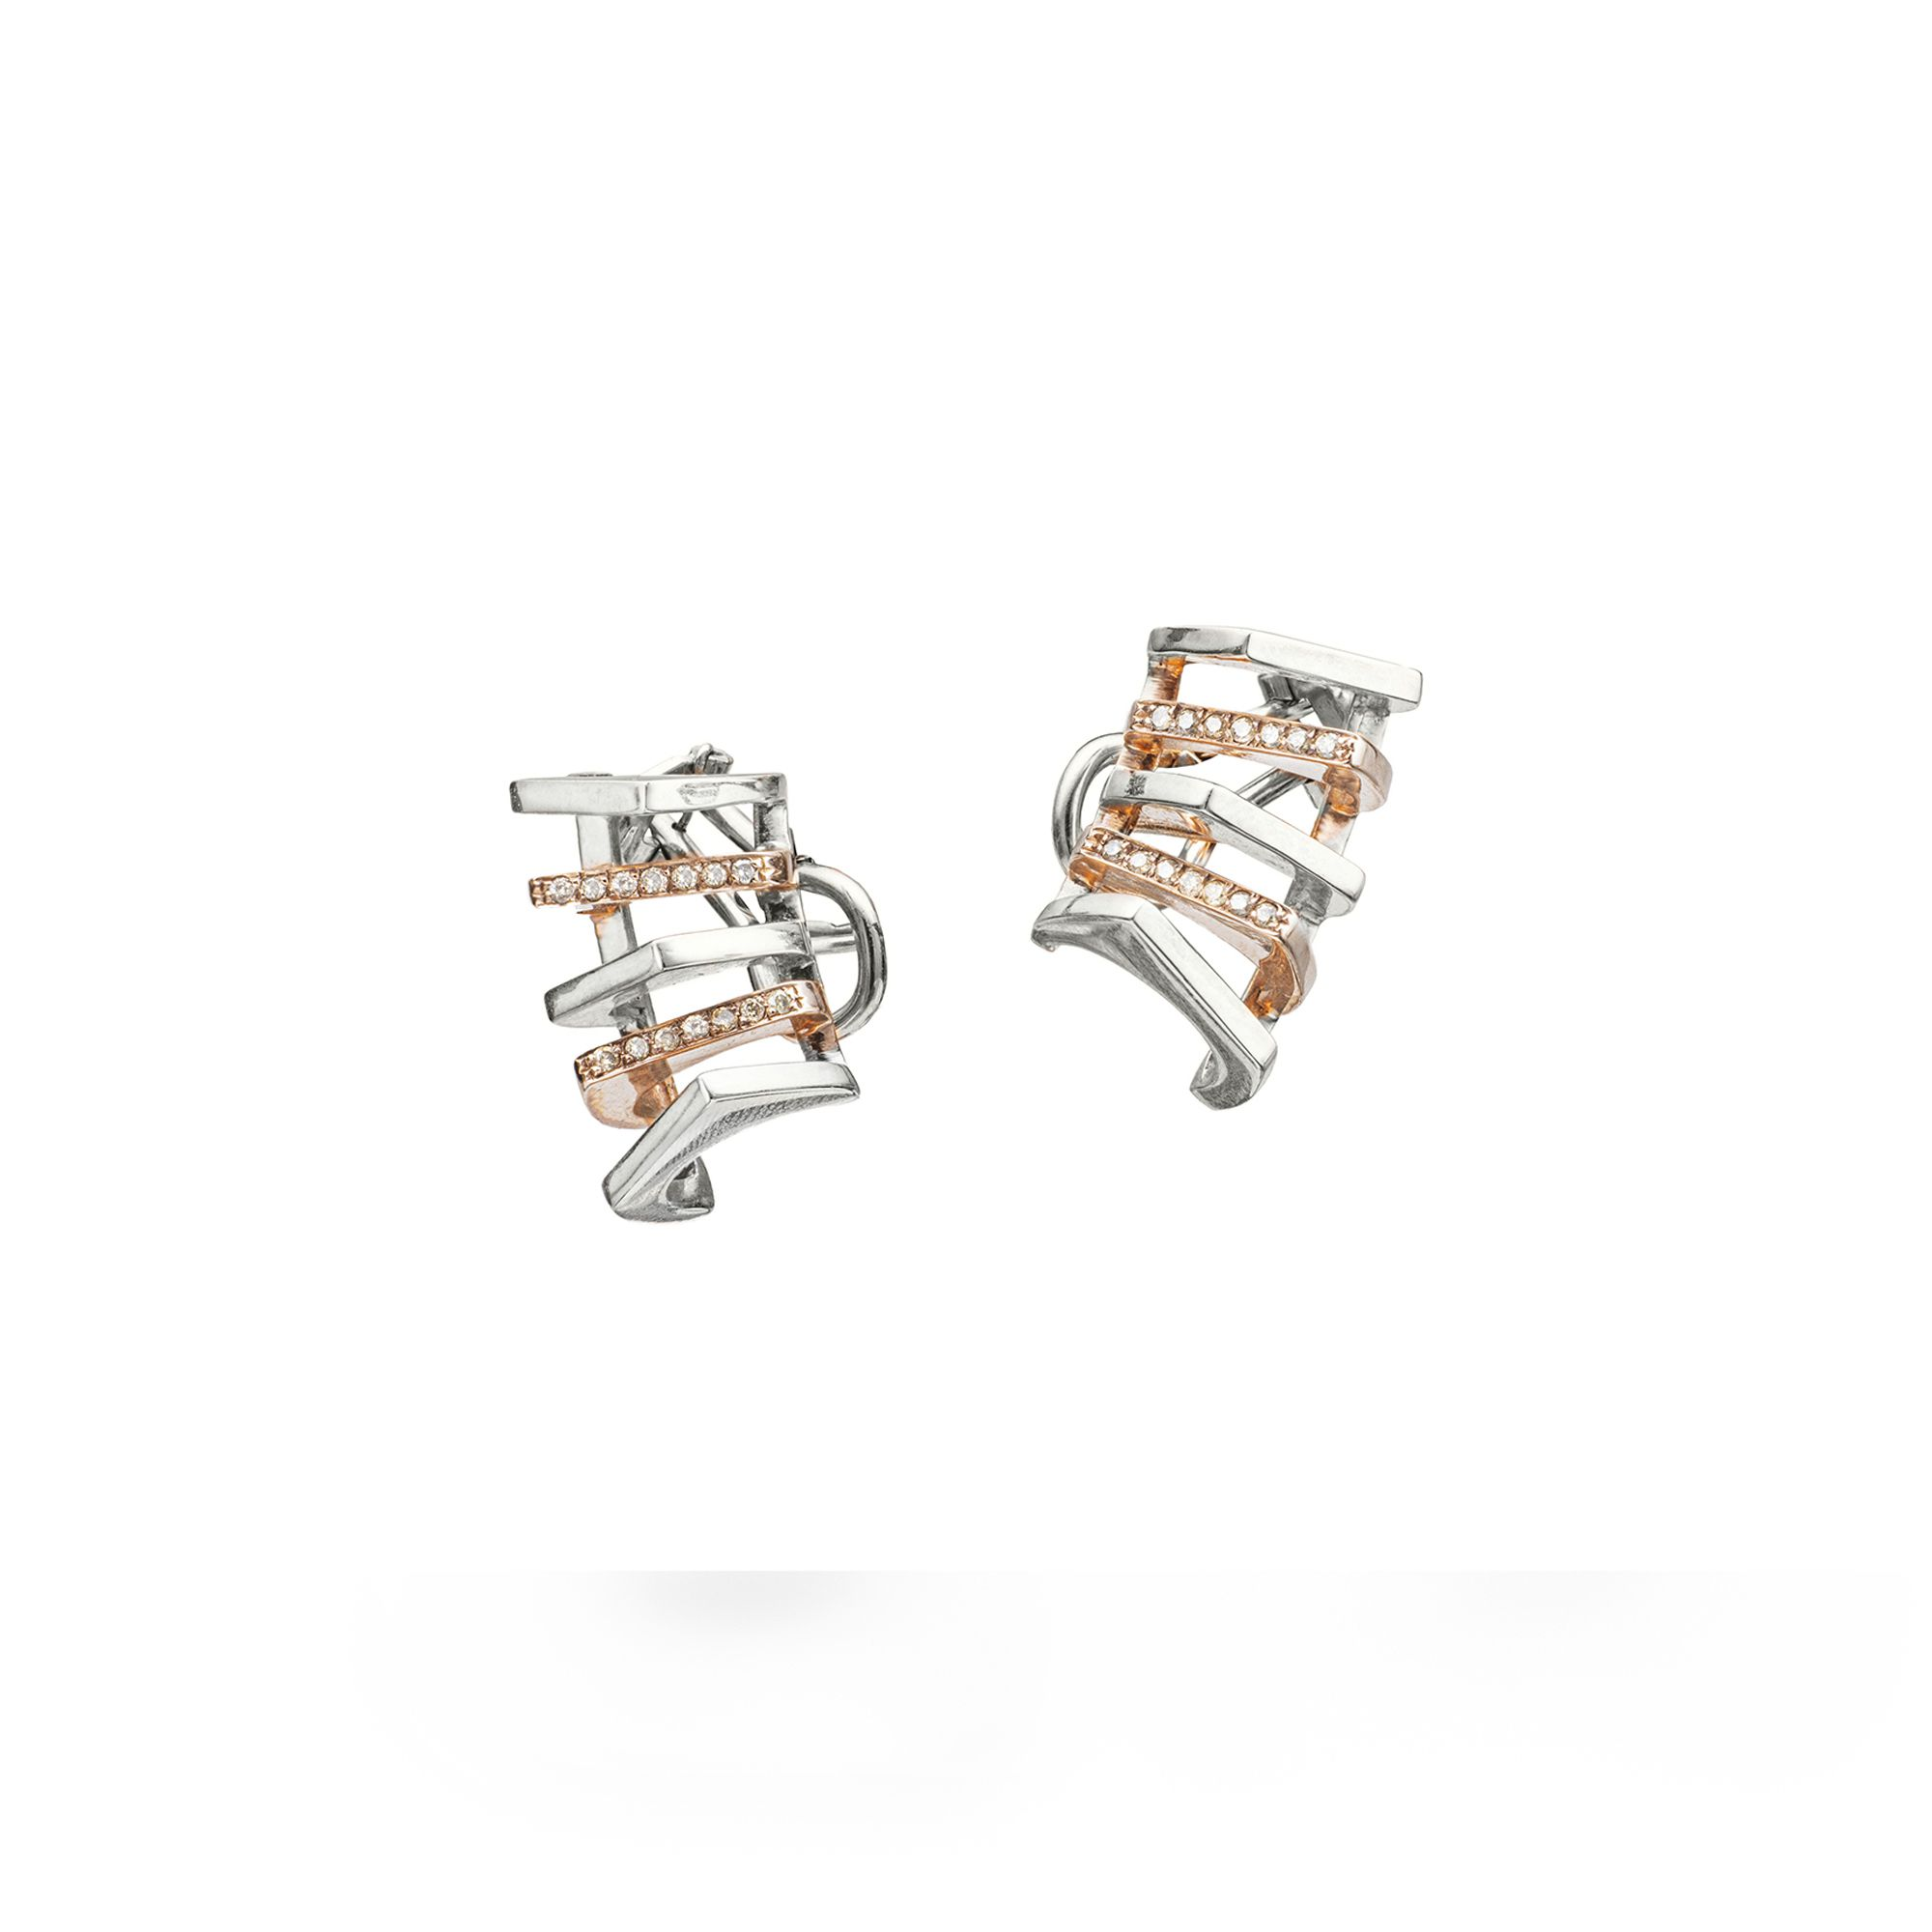 5 element 'Congiunzioni' earrings Silver and rose gold earrings with diamonds